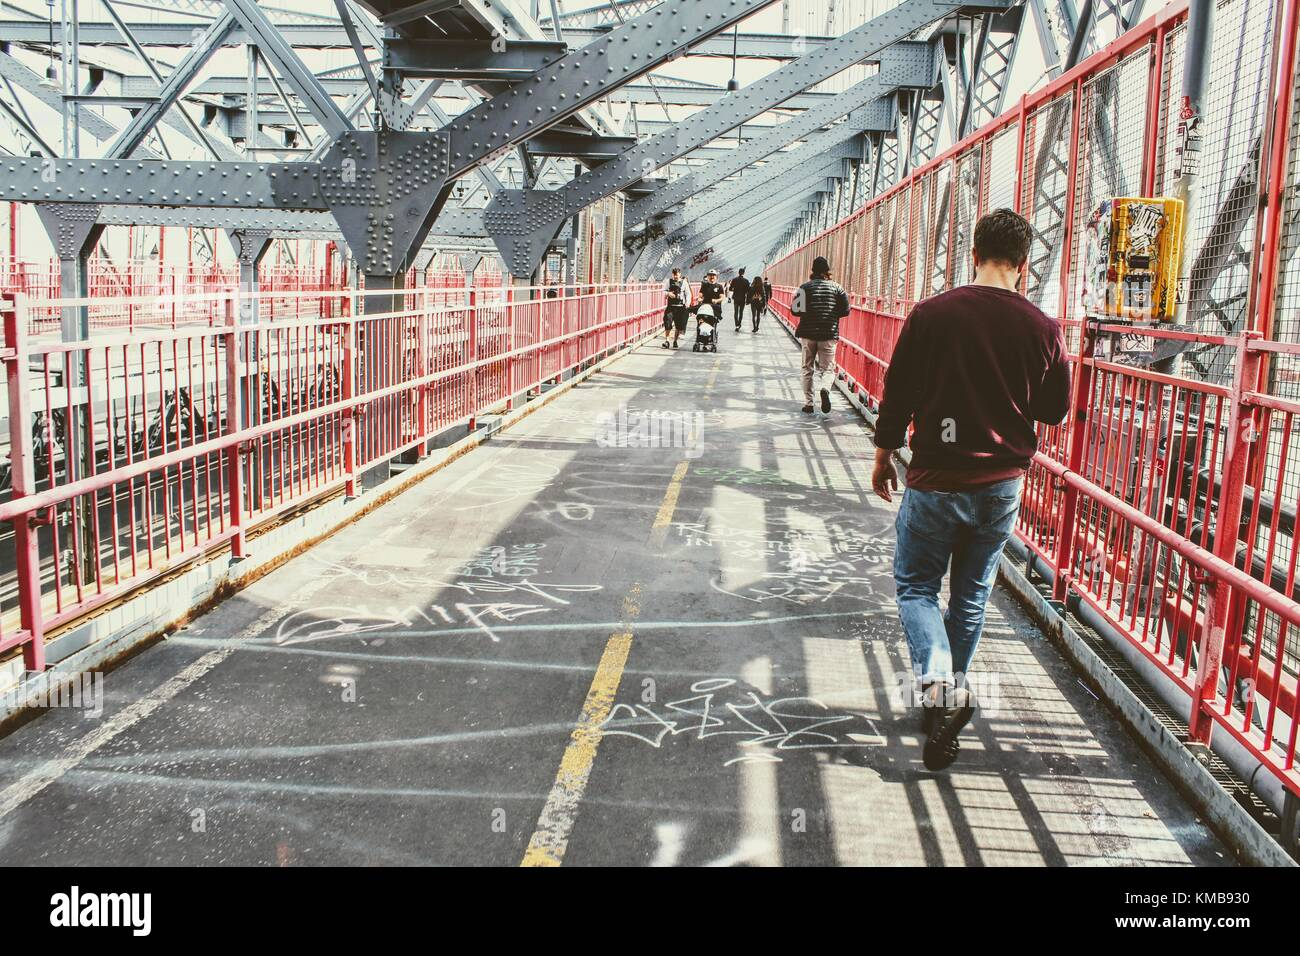 Nueva York, abril de 2017. paseo de domingo en Williamsburg Bridge Imagen De Stock